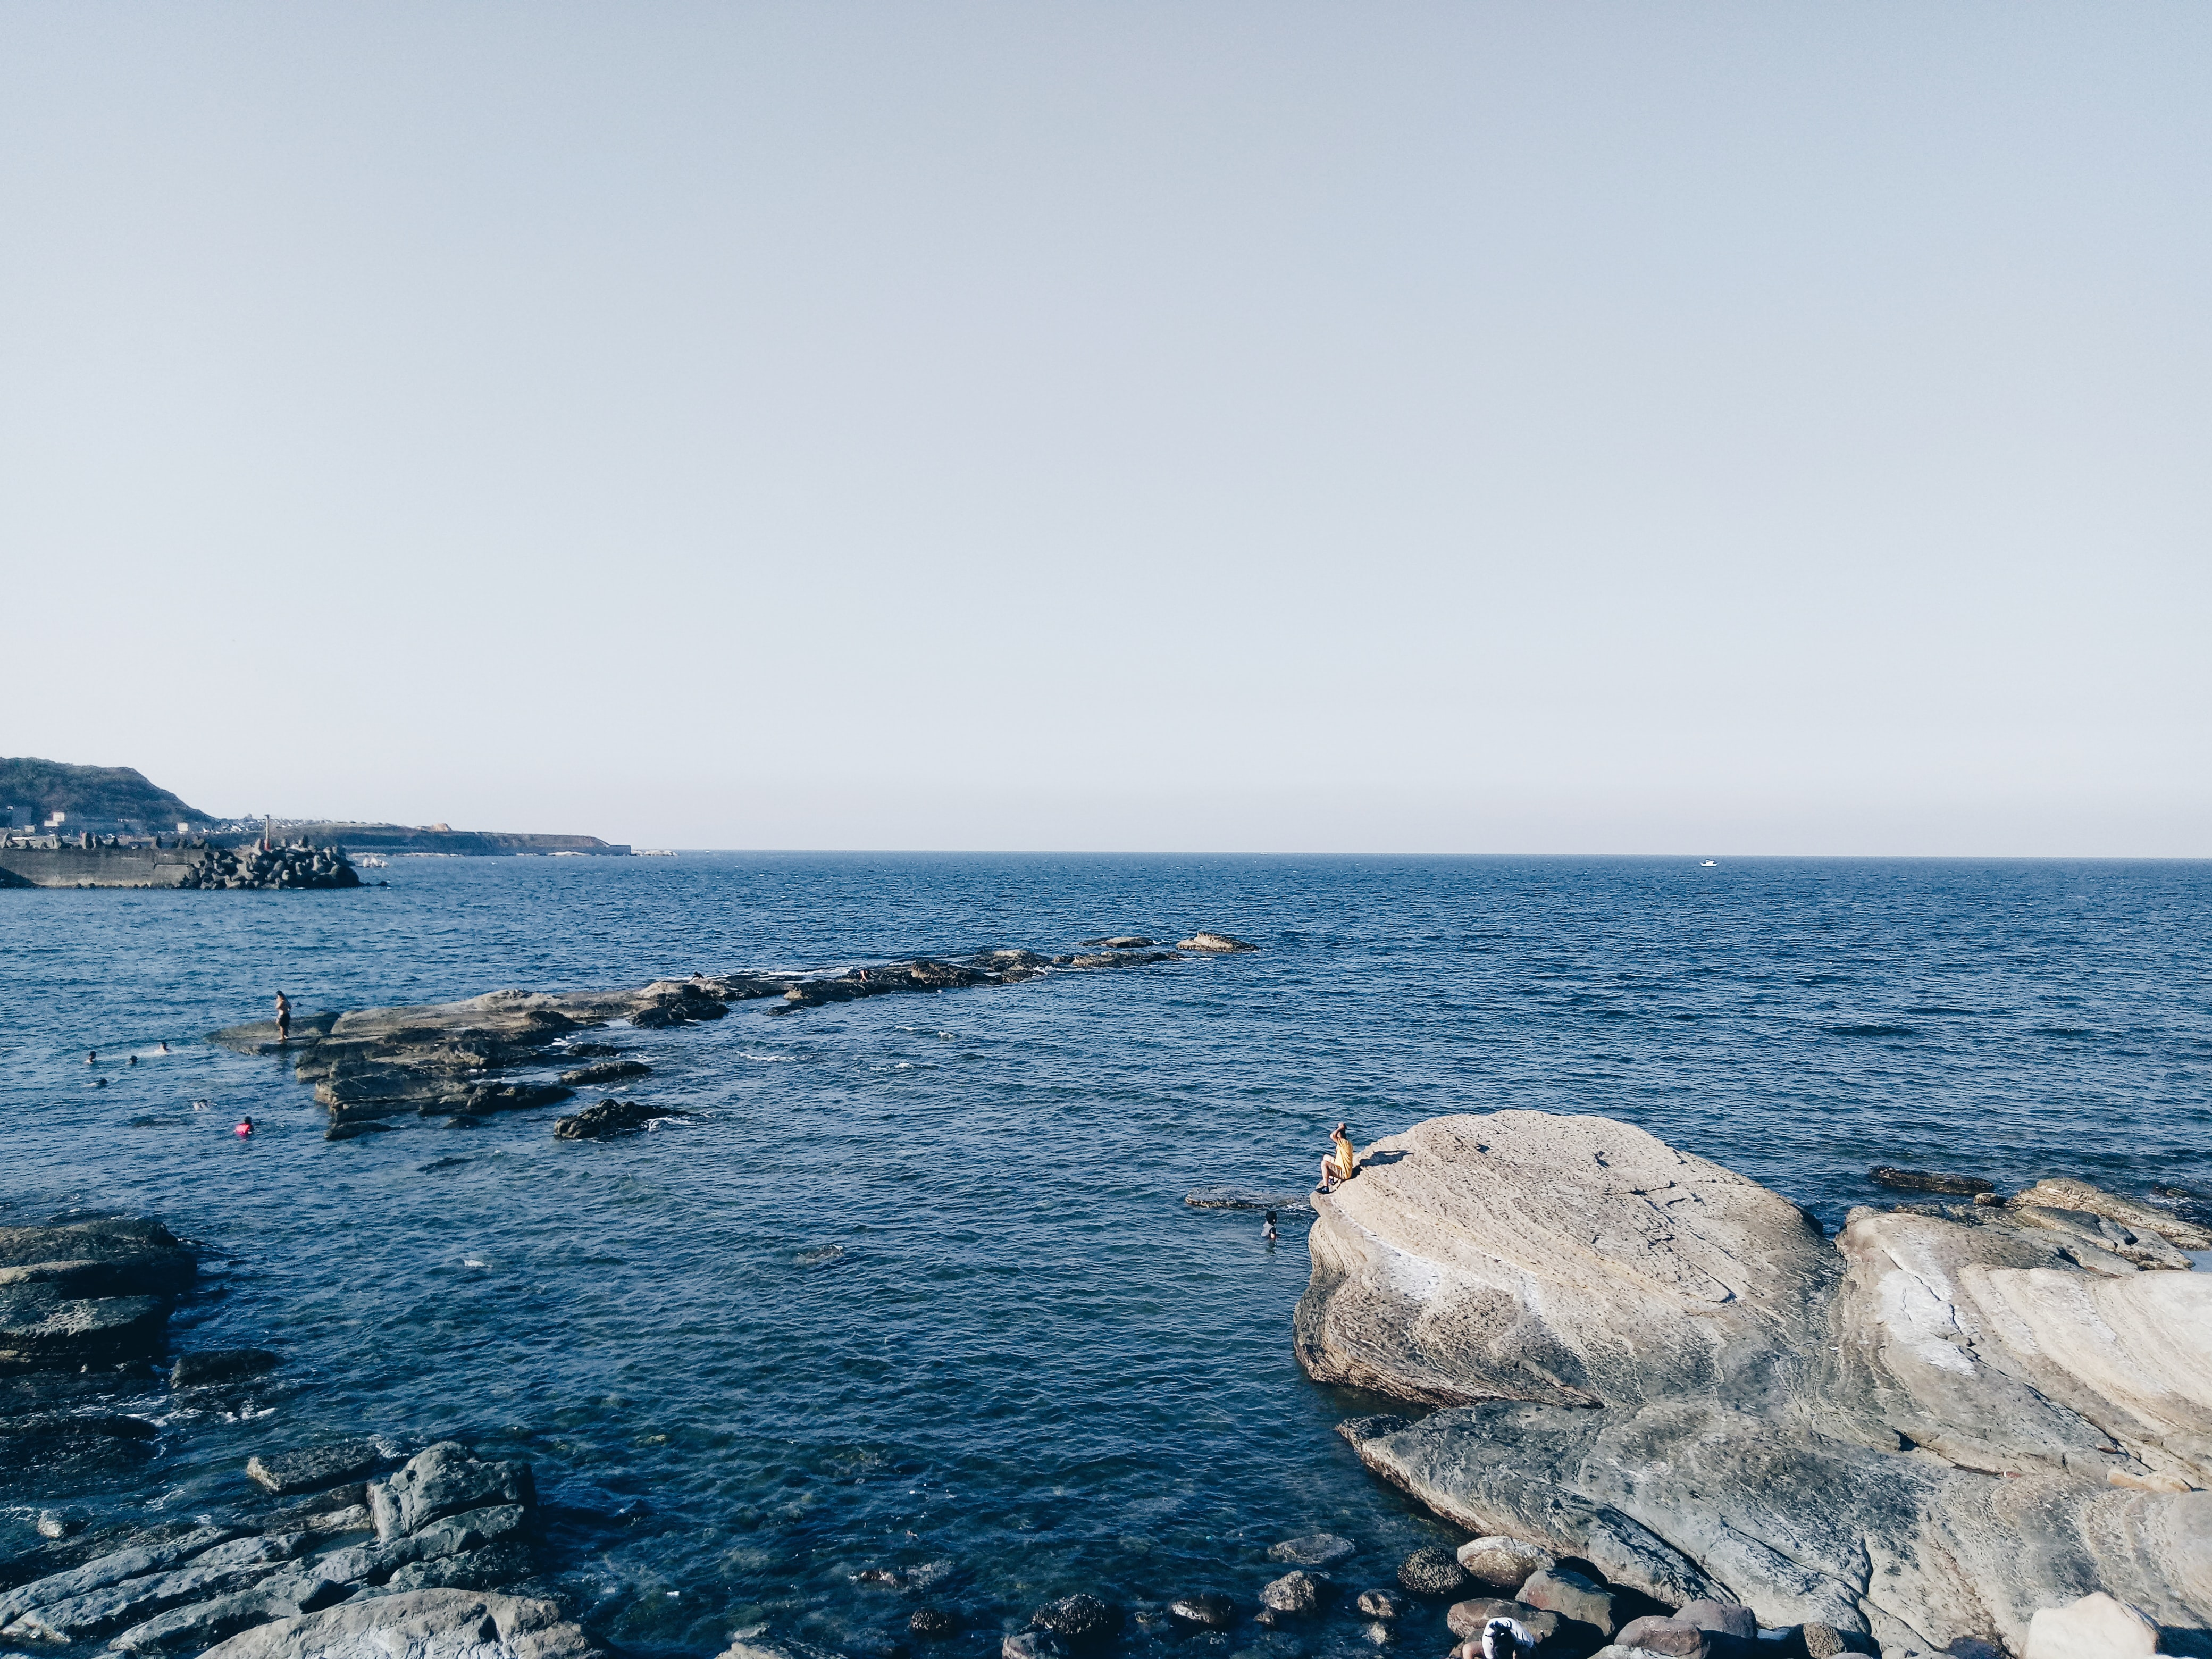 sea and stone at daytime